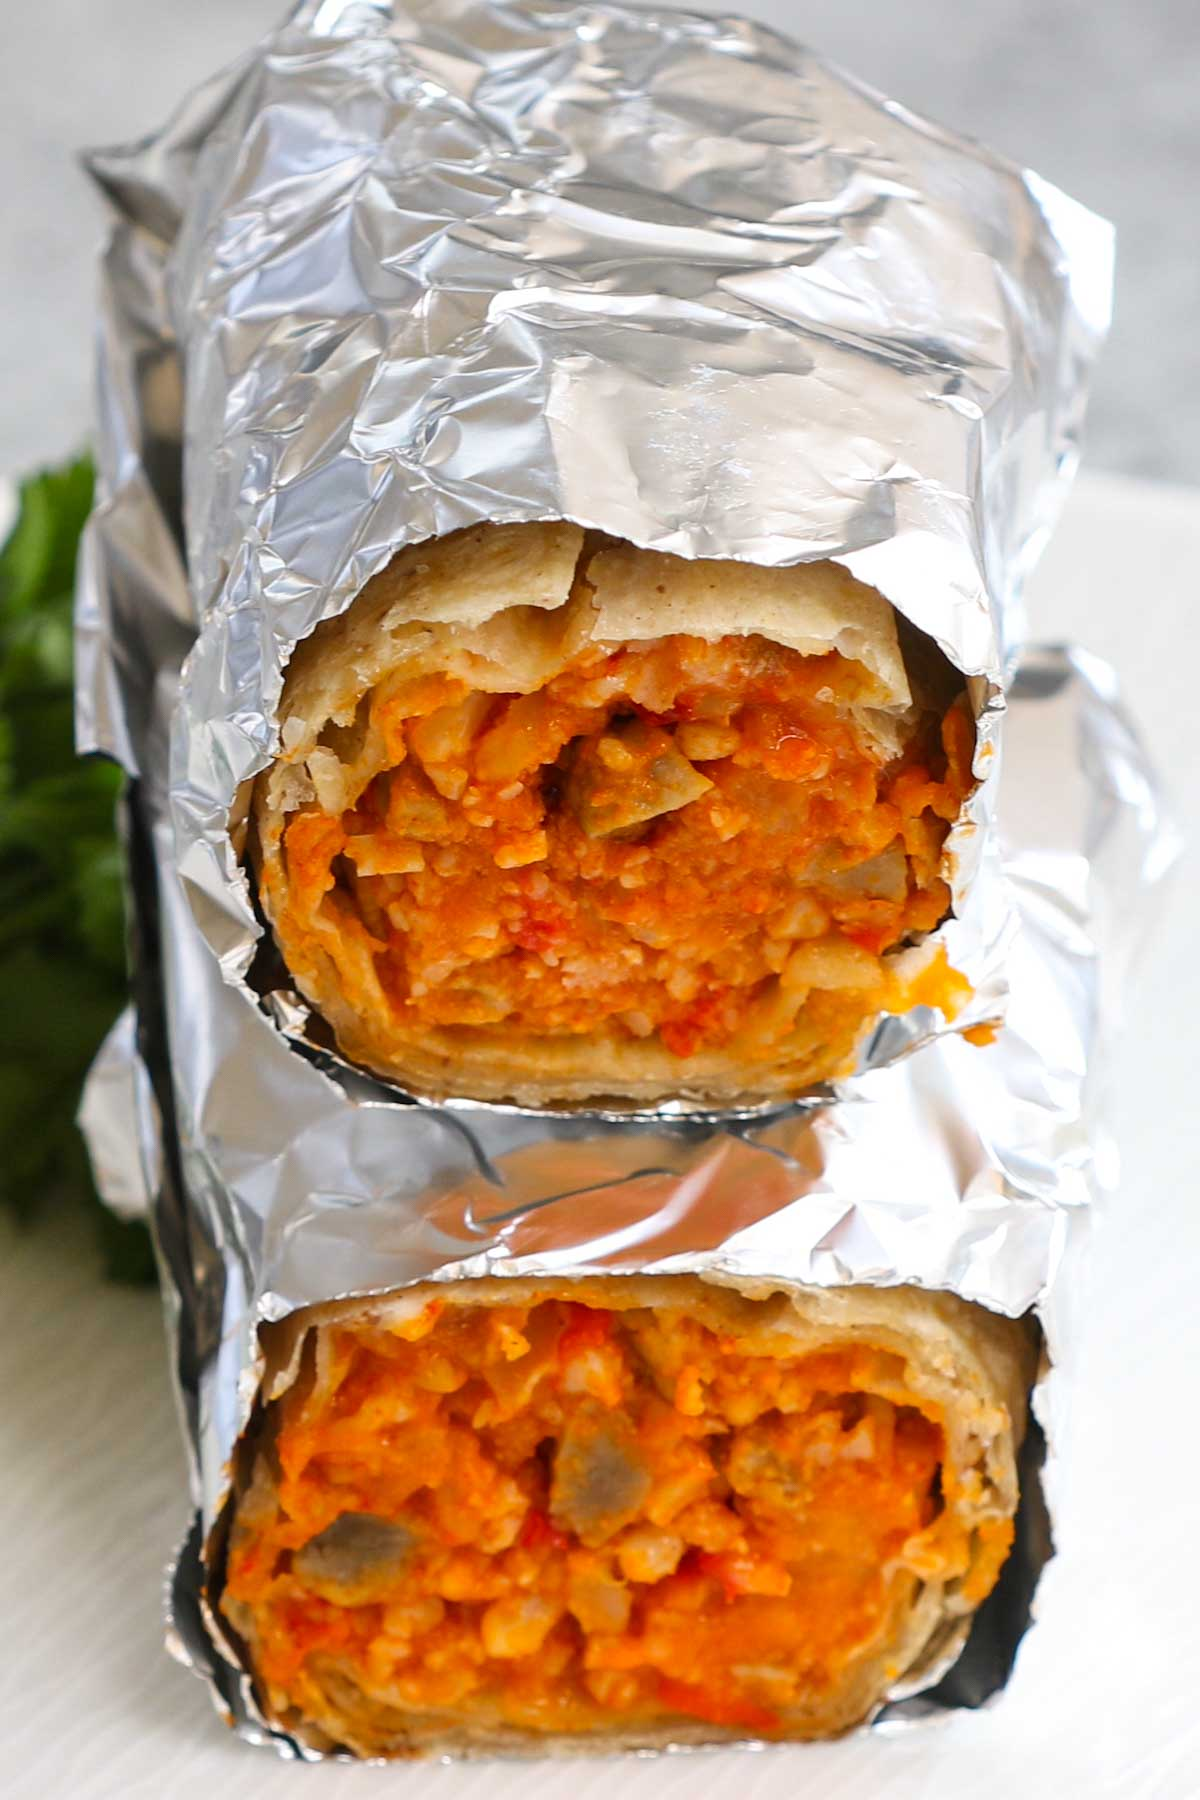 Cooking Frozen Burritos in Air Fryer is the easiest way to prepare a perfect lunch, dinner, or even breakfast. These air fryer frozen burritos are soft and flavorful on the inside and crispy on the outside. You can use this method to cook chimichanga too! Keep some frozen burritos in the freezer and you can satisfy your Mexican food cravings at any time!